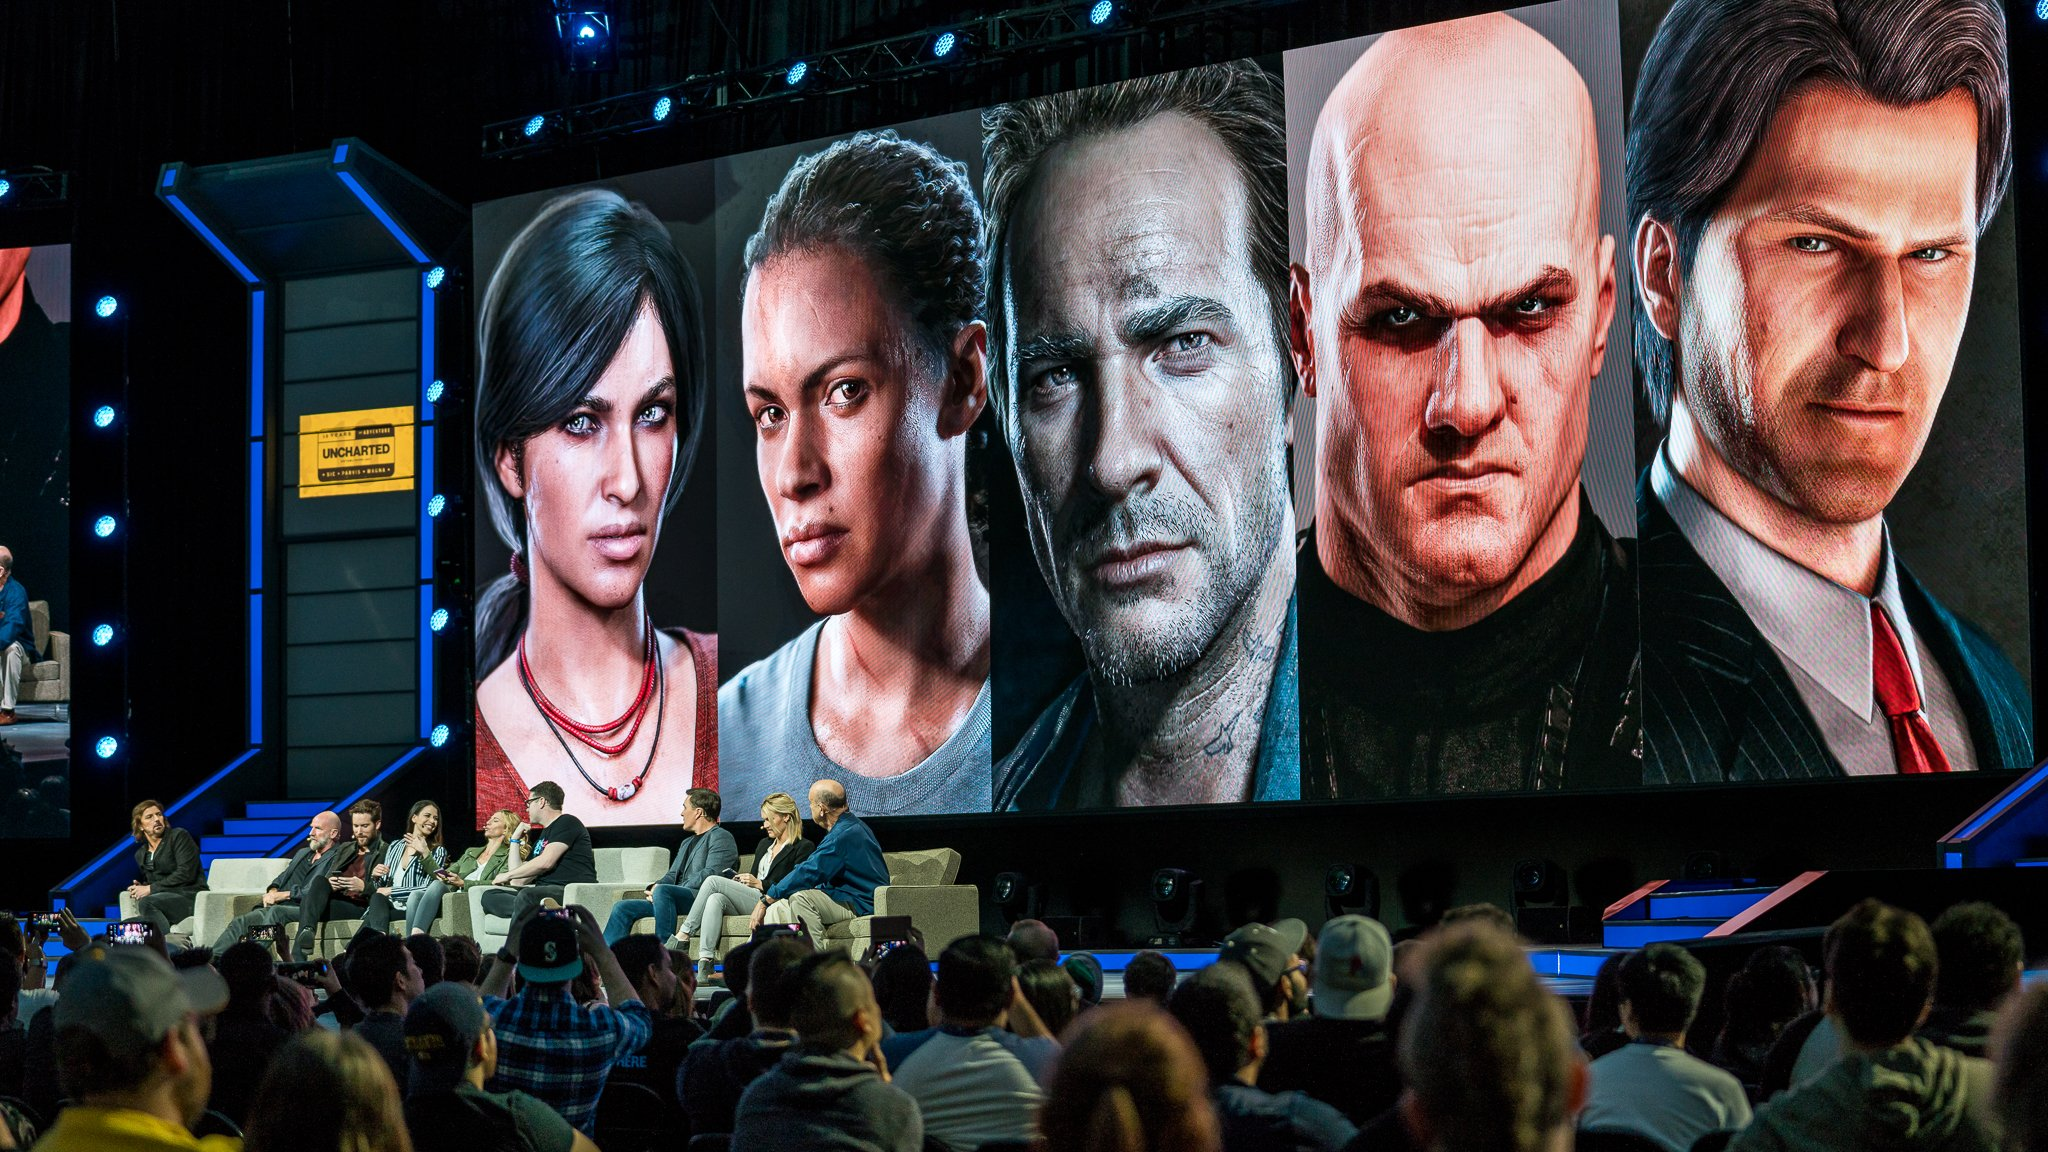 How many Uncharted actors can we fit on one stage? Let's find out! #PSX  https://t.co/6WGSKHicJz https://t.co/K52OntXm6Z